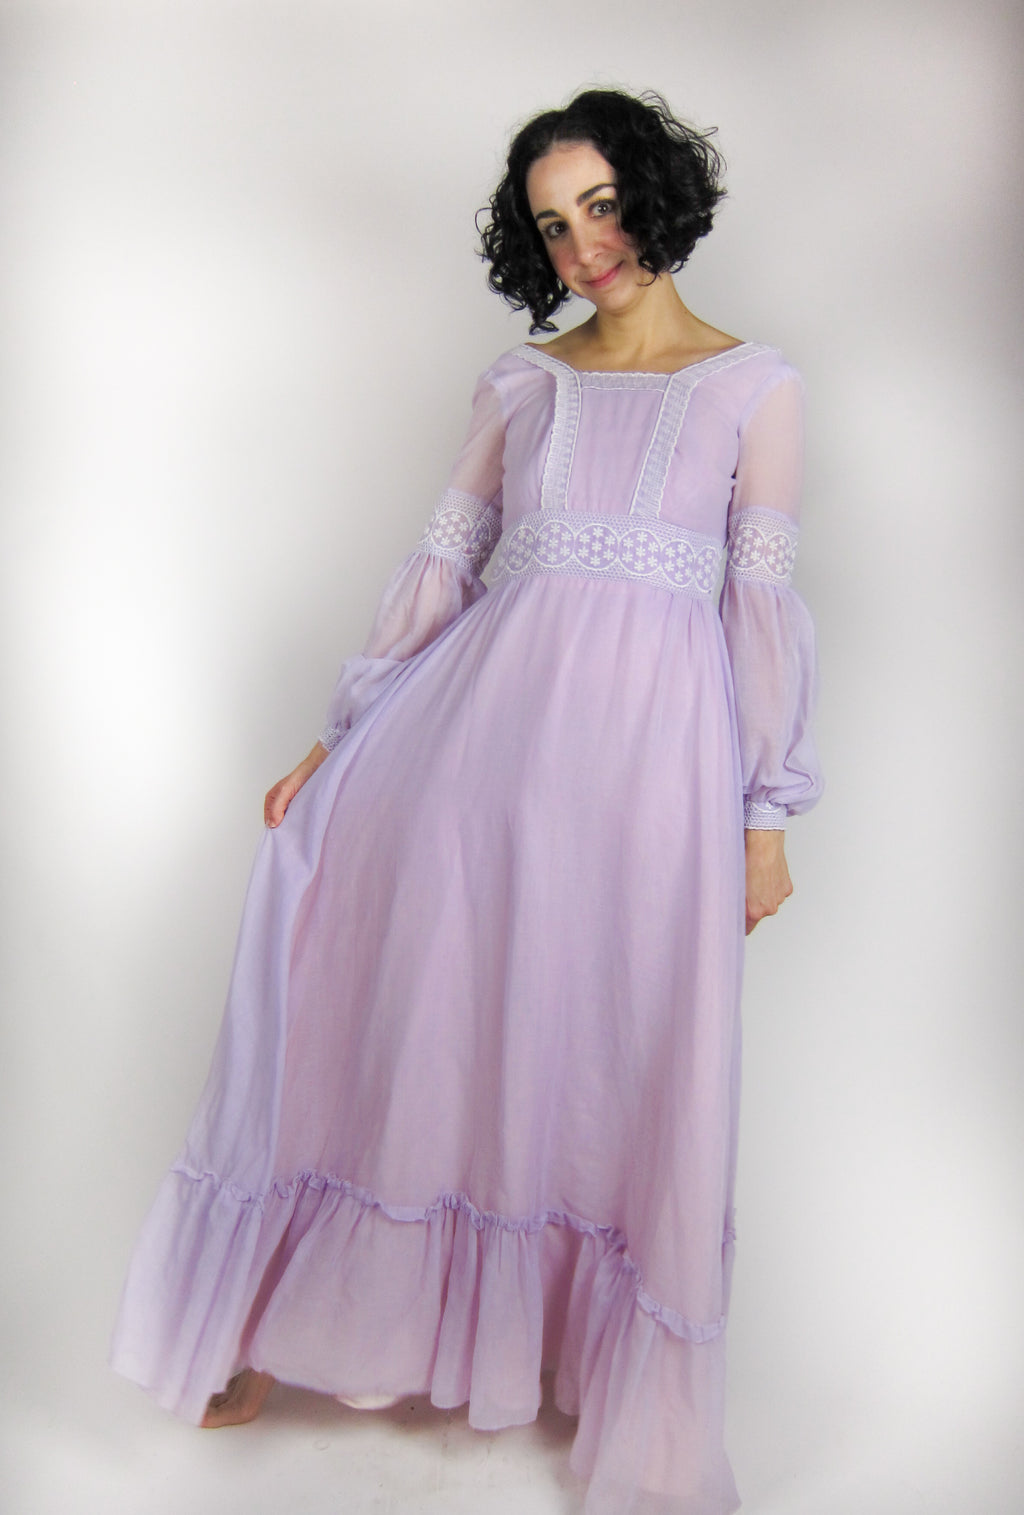 Vintage Romantic Poet Sleeve Maxi Dress